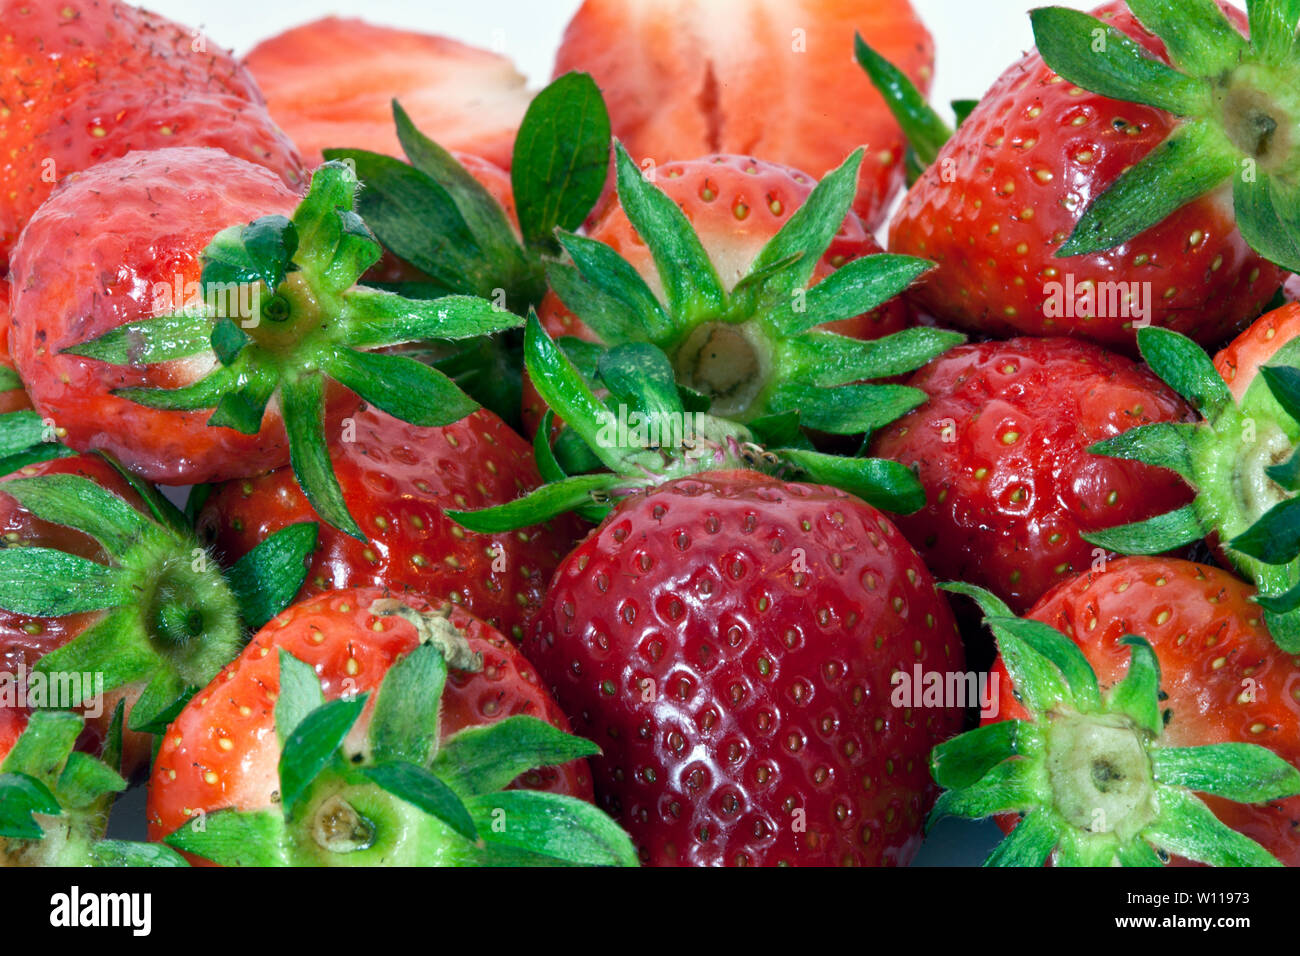 Fruit and coffee in the bowl. foods rich in vitamins - Stock Image